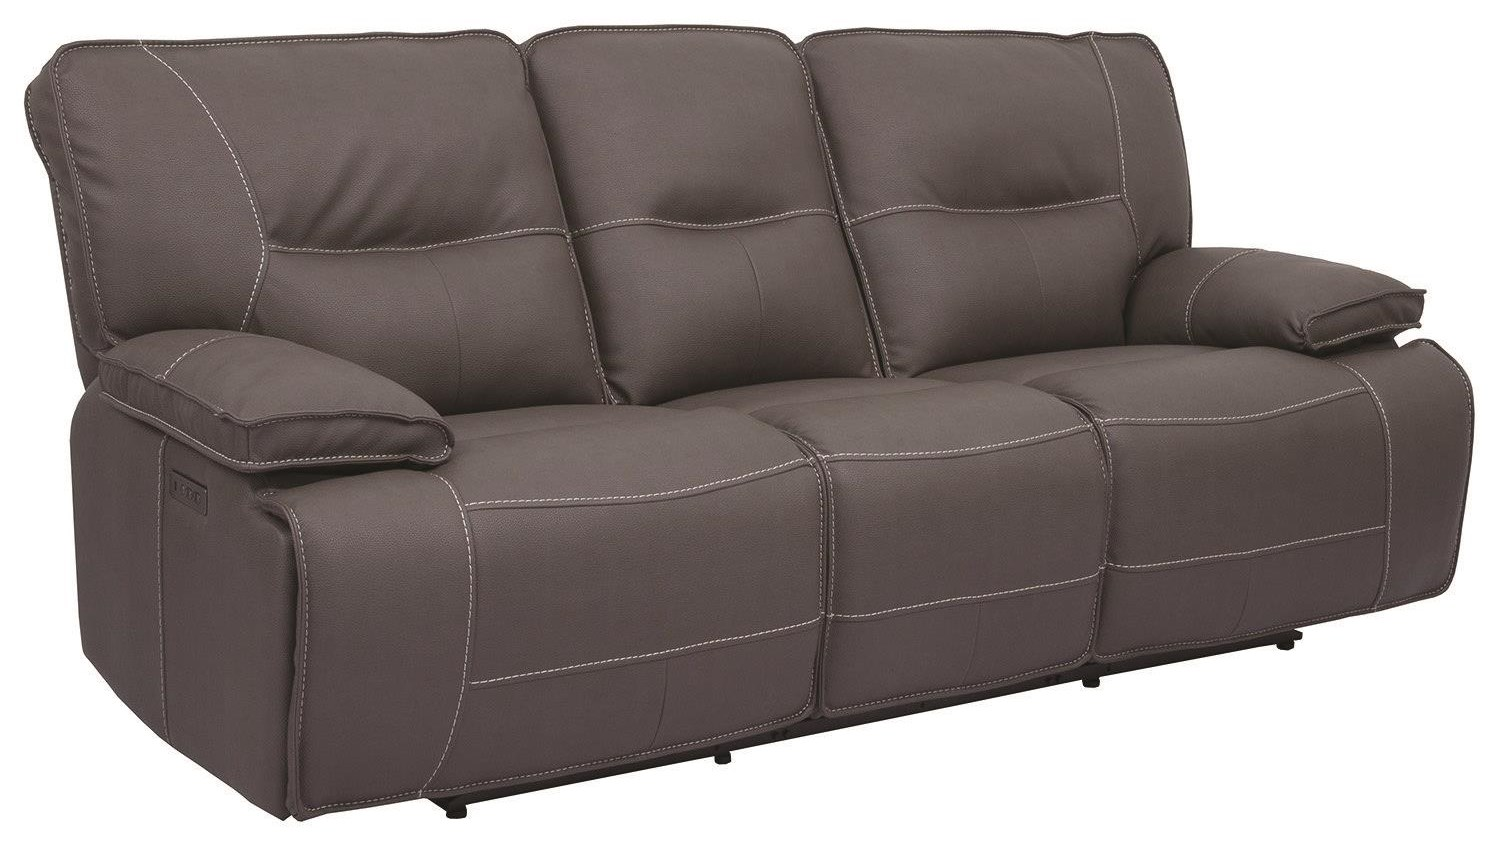 Spartan Spartan Power Reclining Sofa by Parker House at Morris Home